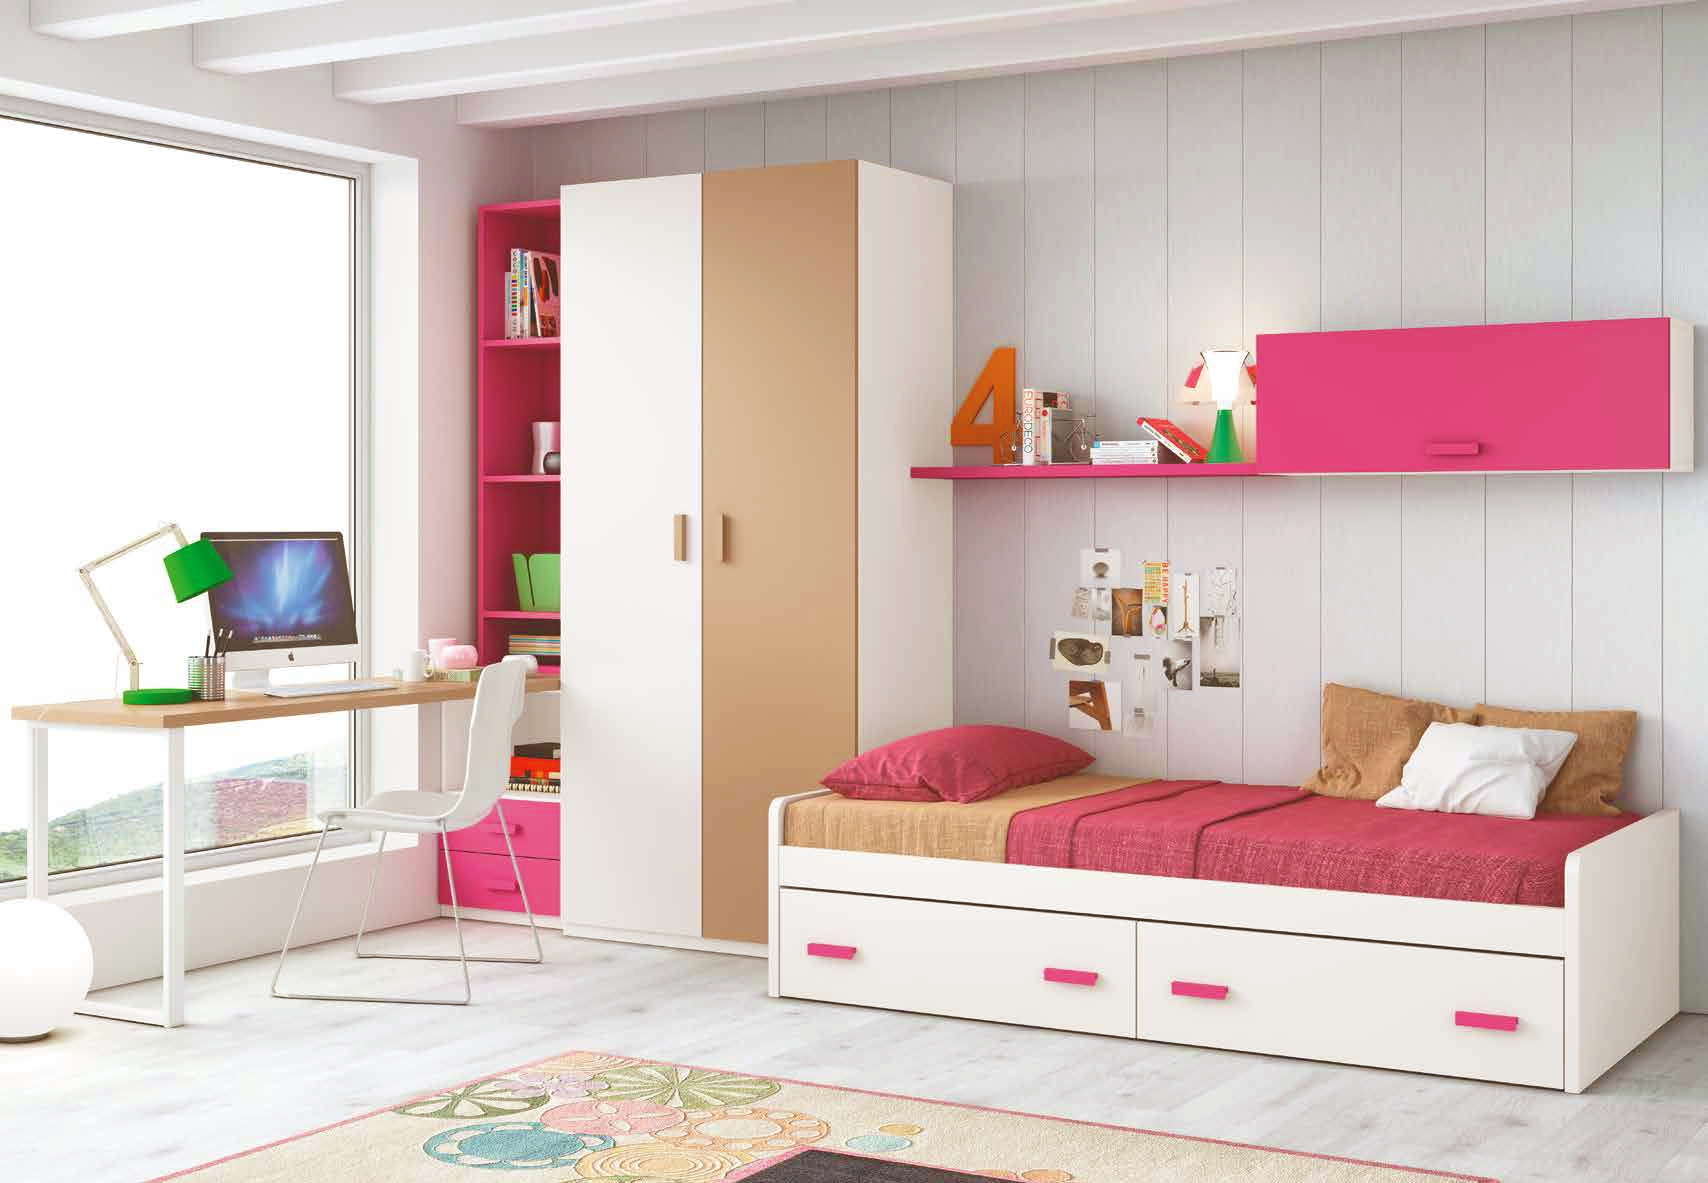 Chambre ado style industriel for Idee decoration chambre fille